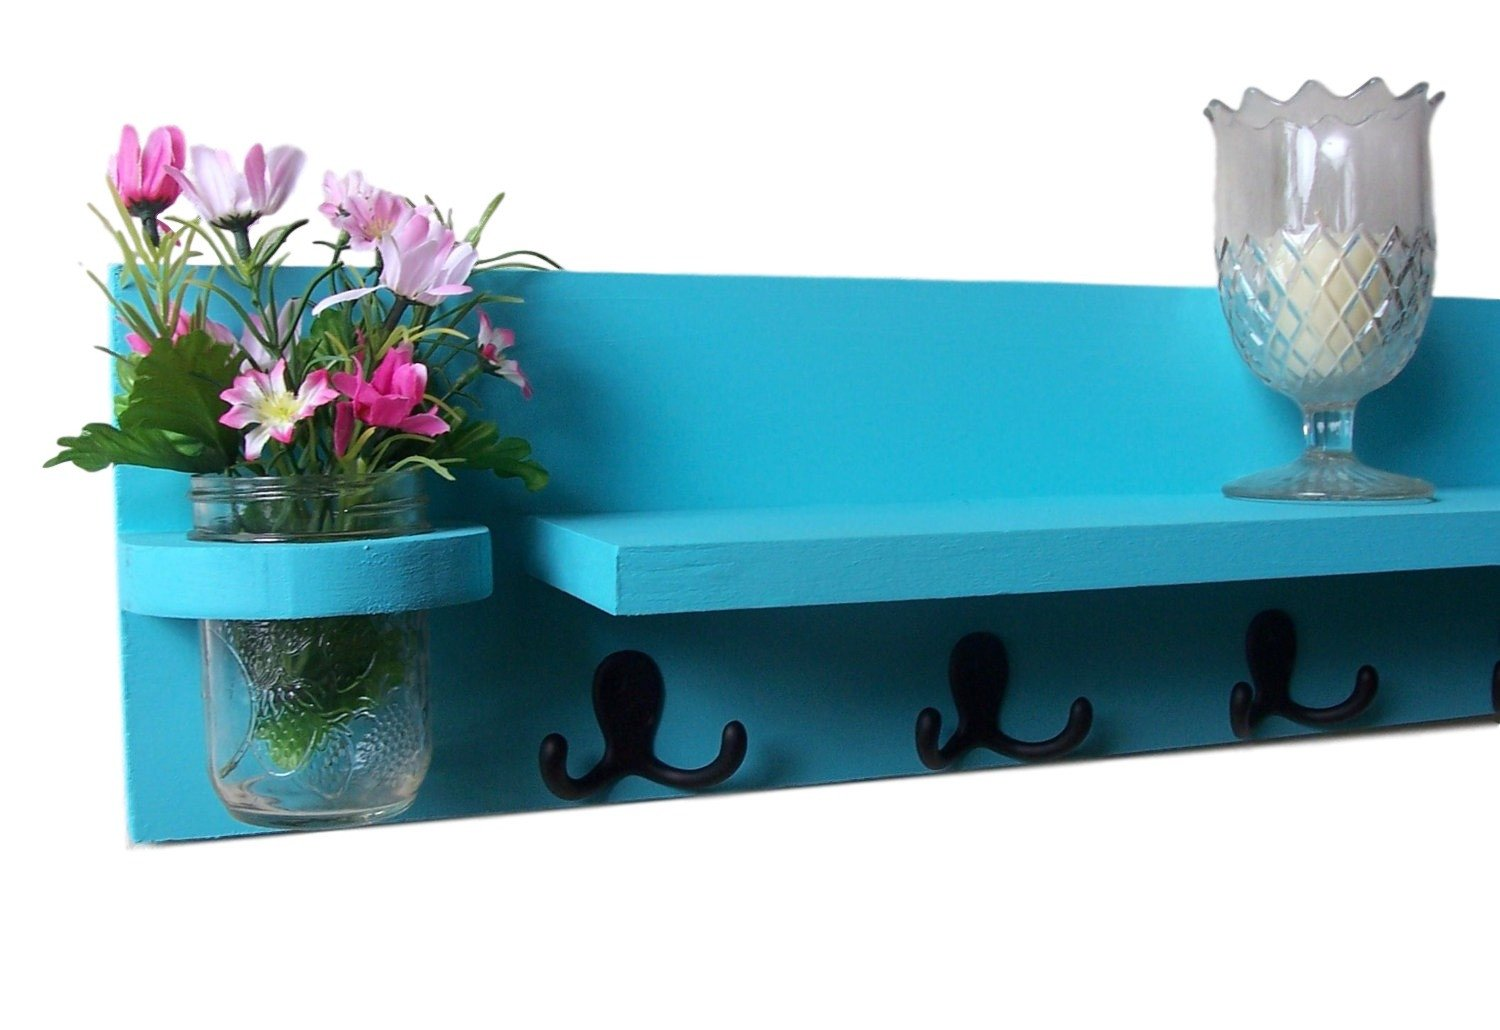 Coat Rack - Mail Organizer - Shelf with Mail Holder